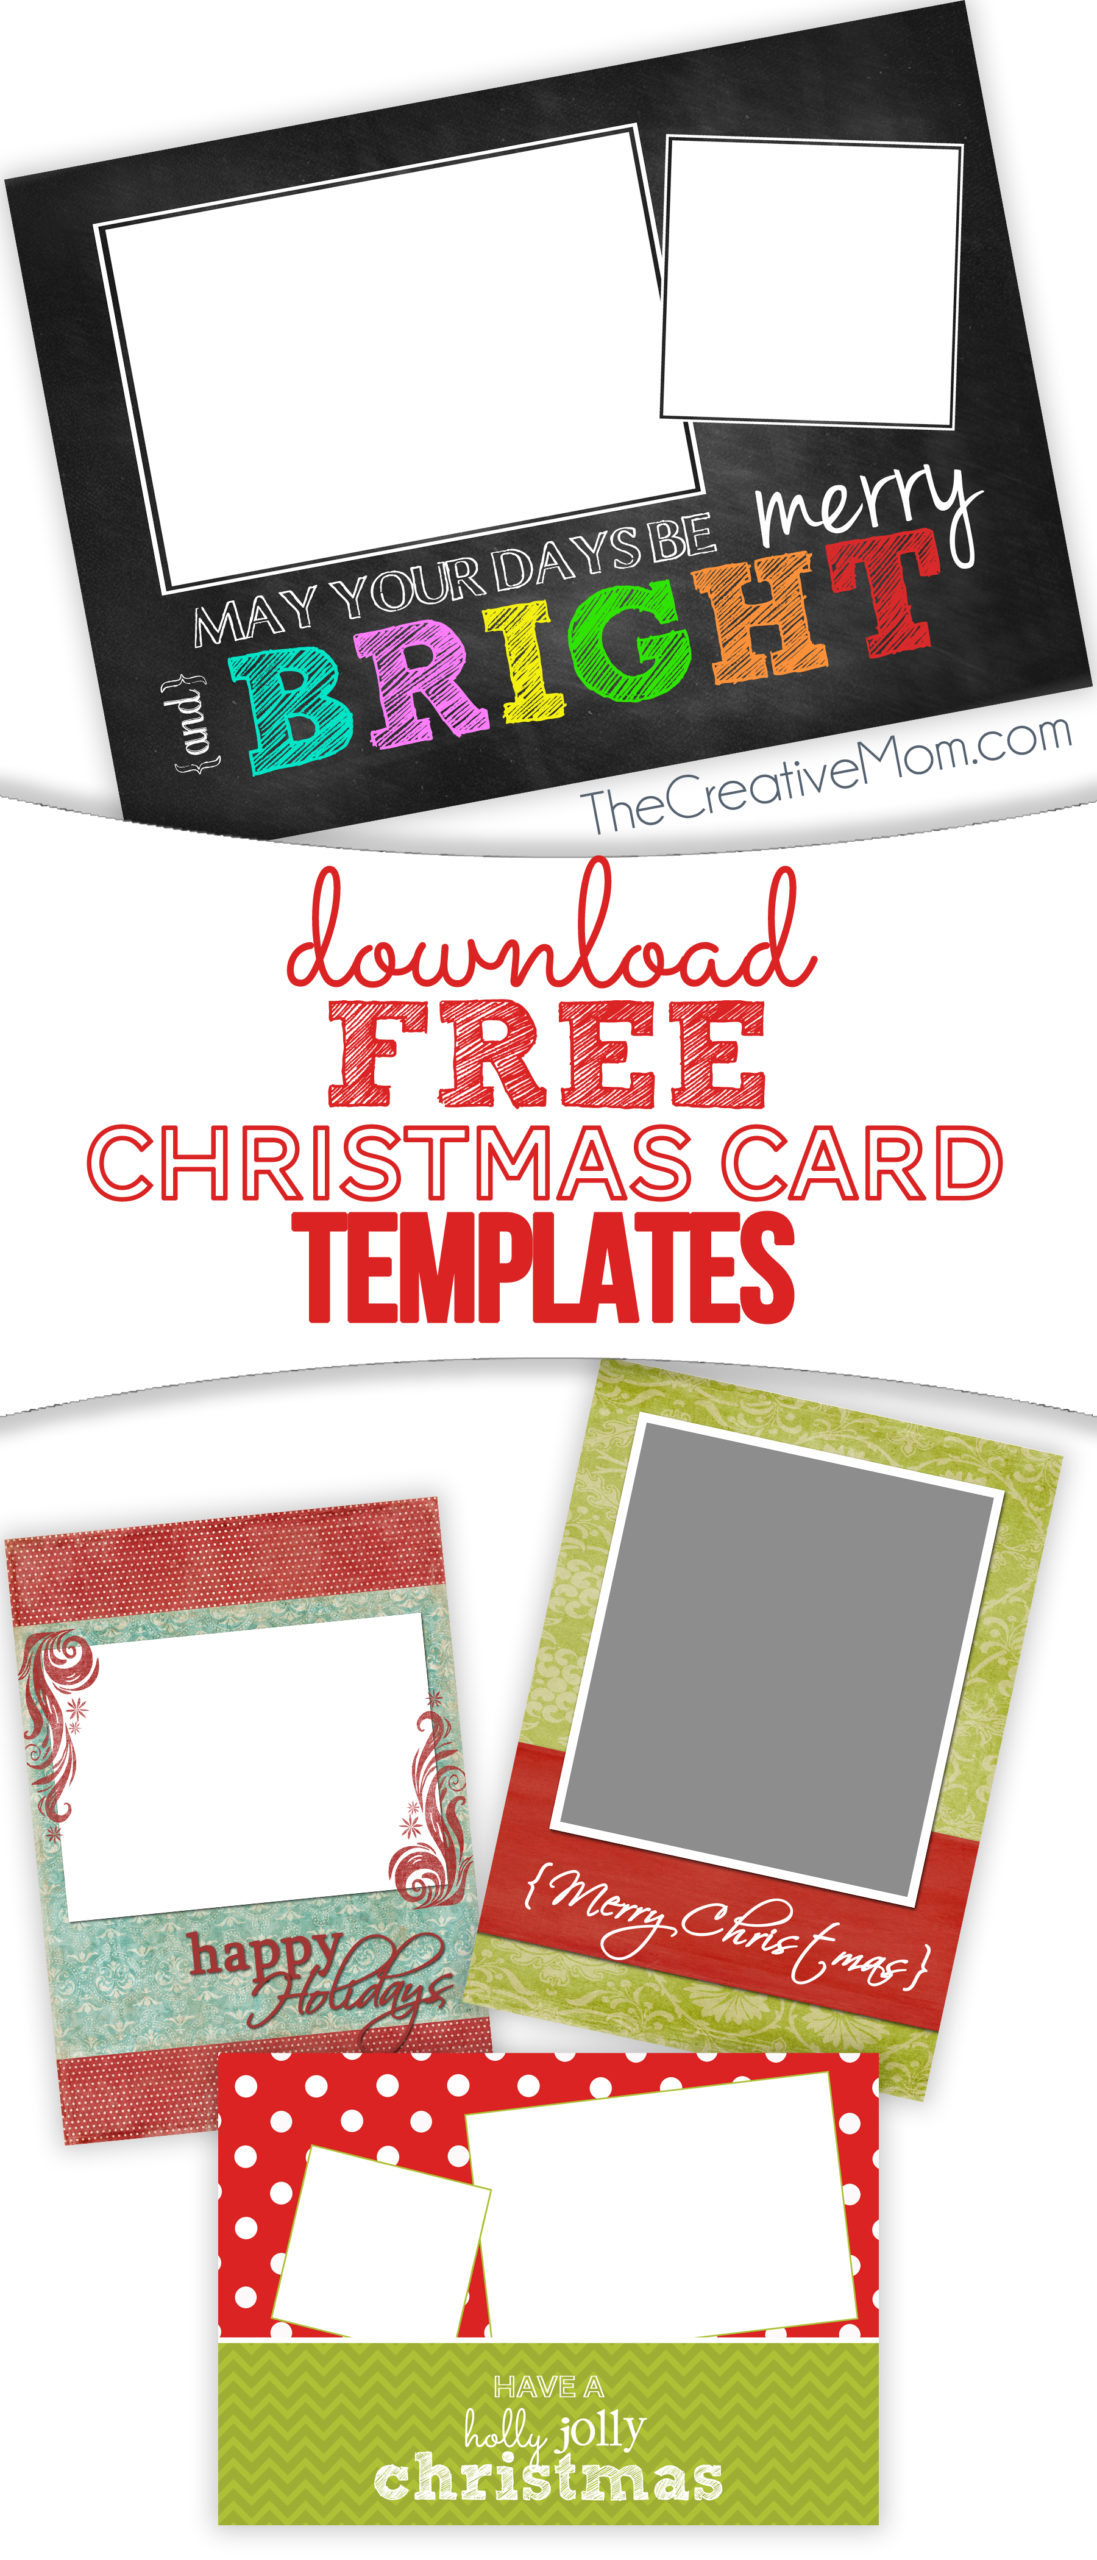 Christmas Card Templates (free download)